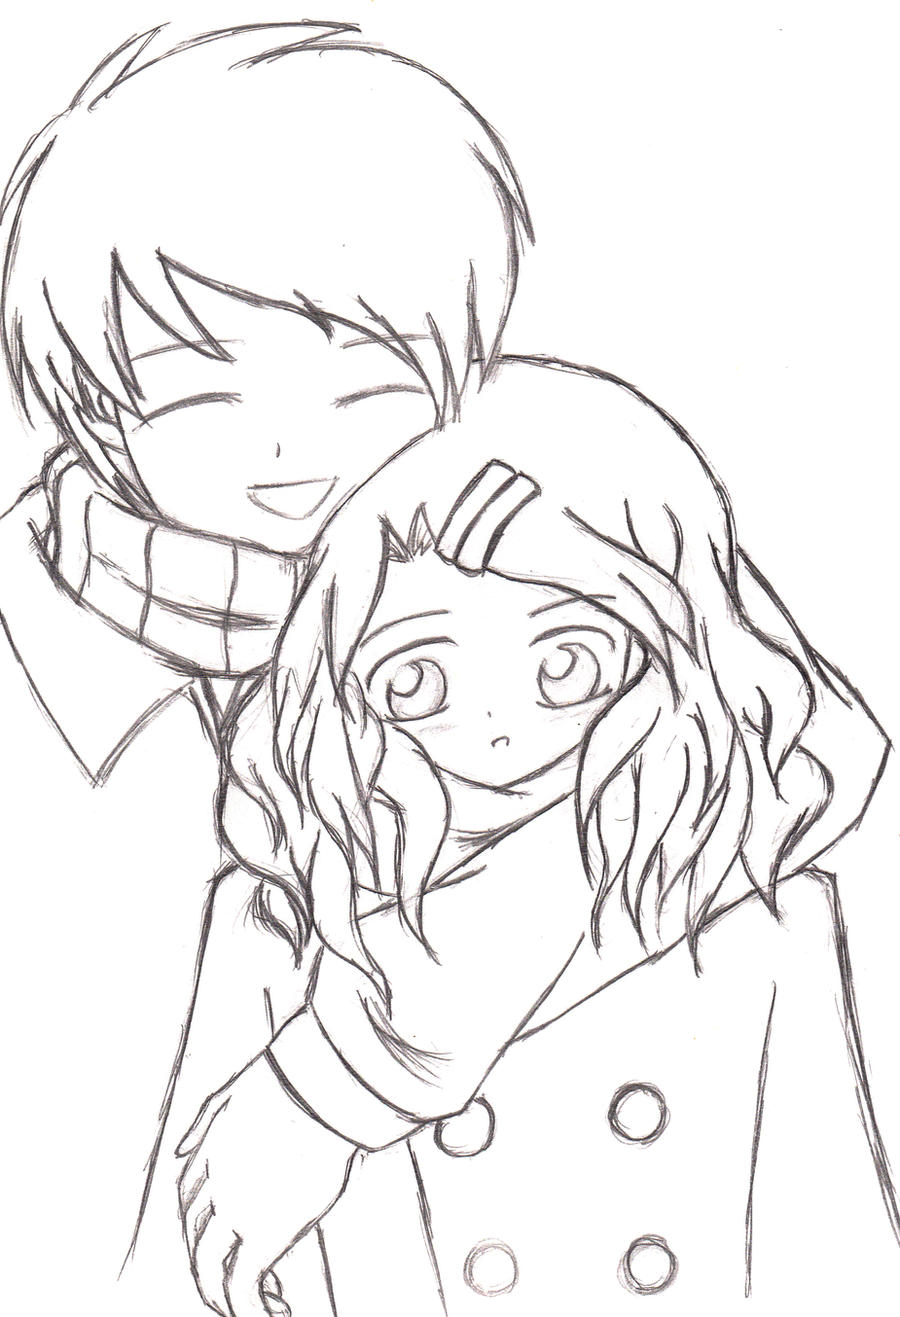 Cute Hug Sketch Images amp Pictures Becuo